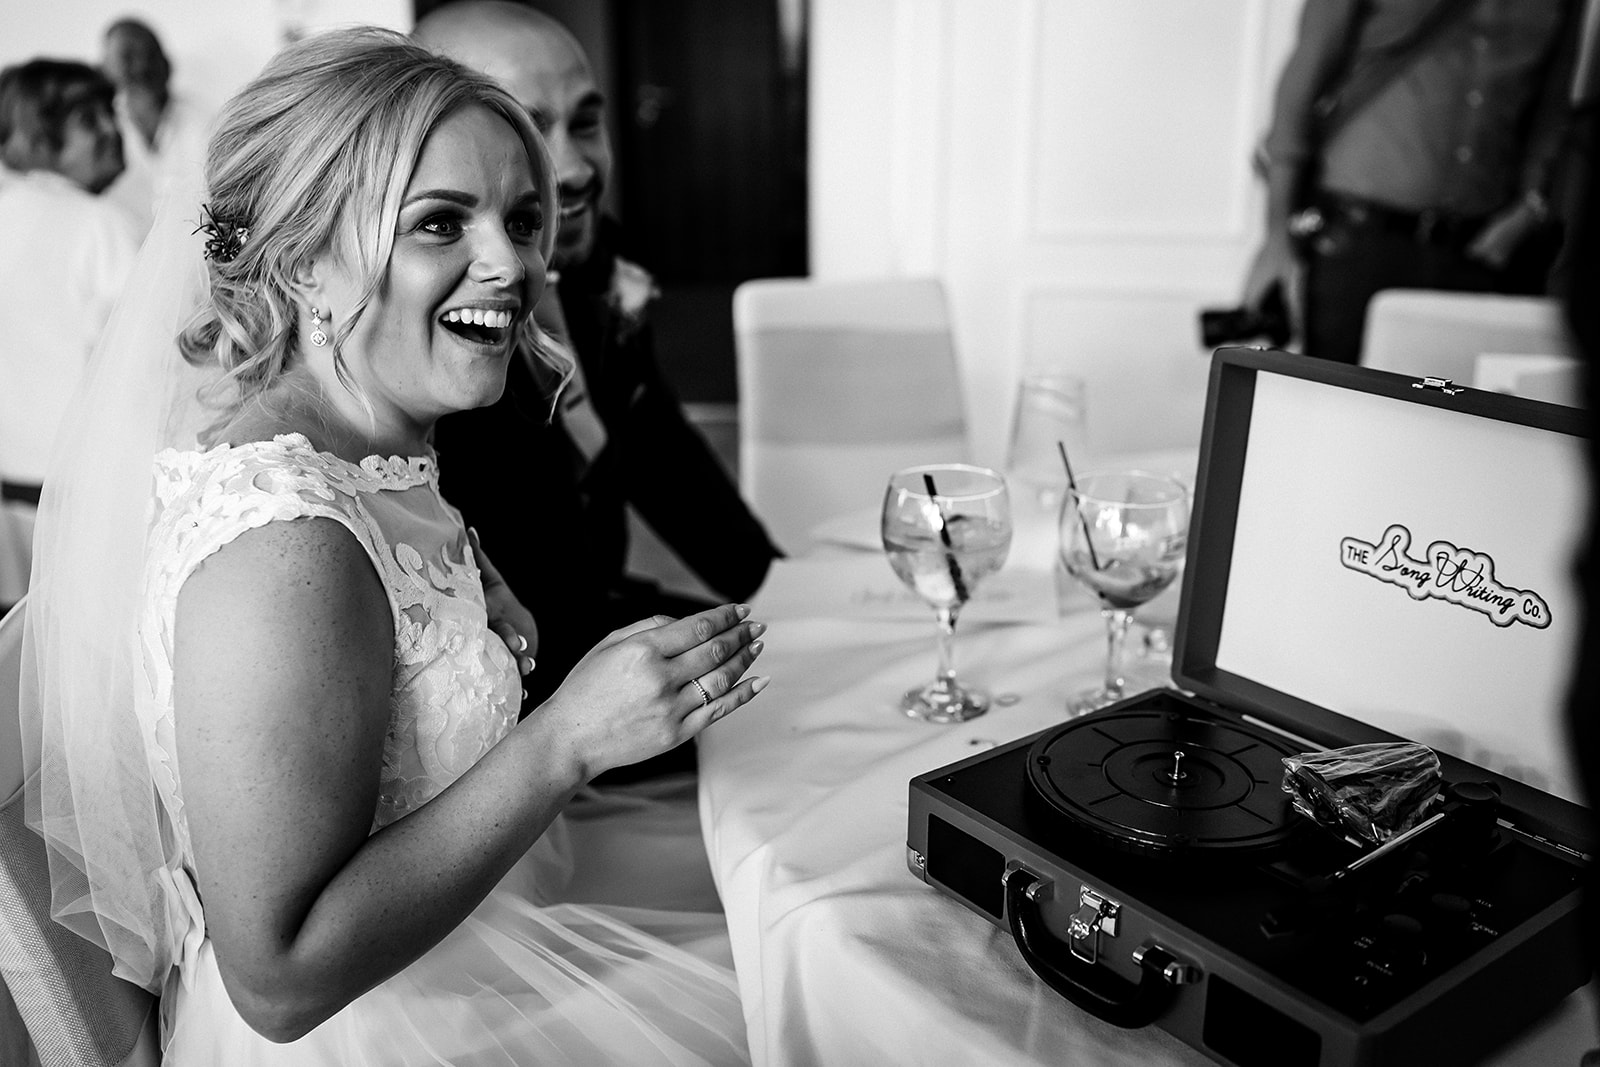 Portable record player given to bride on her wedding day at West Tower